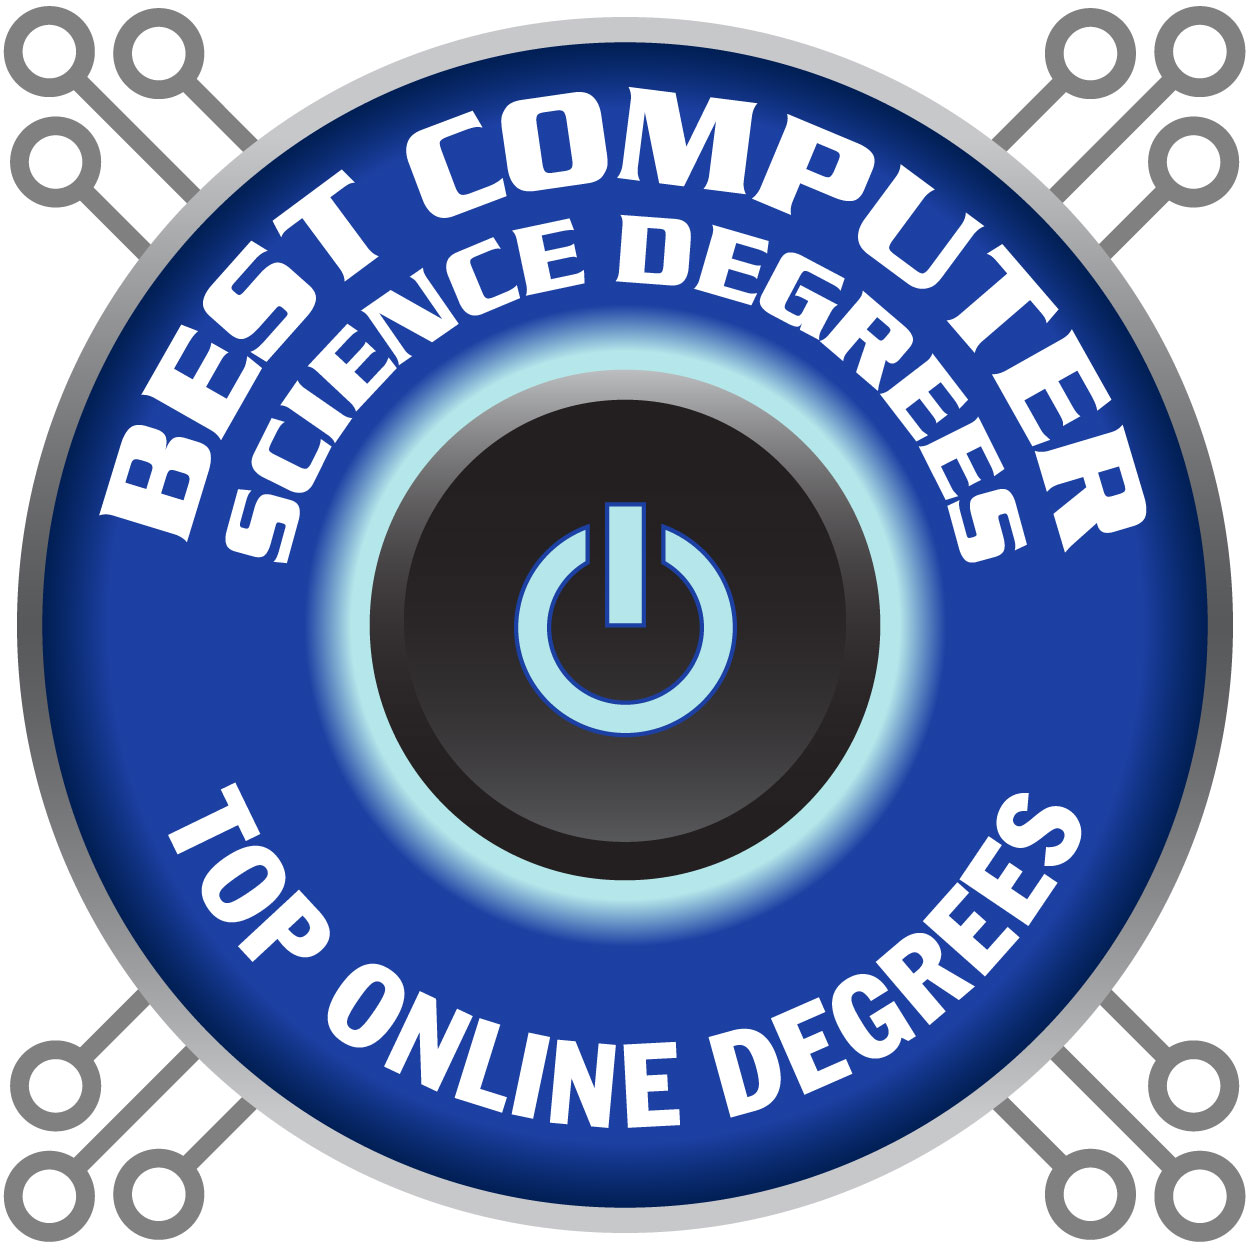 Georgia Tech Computer Science Online